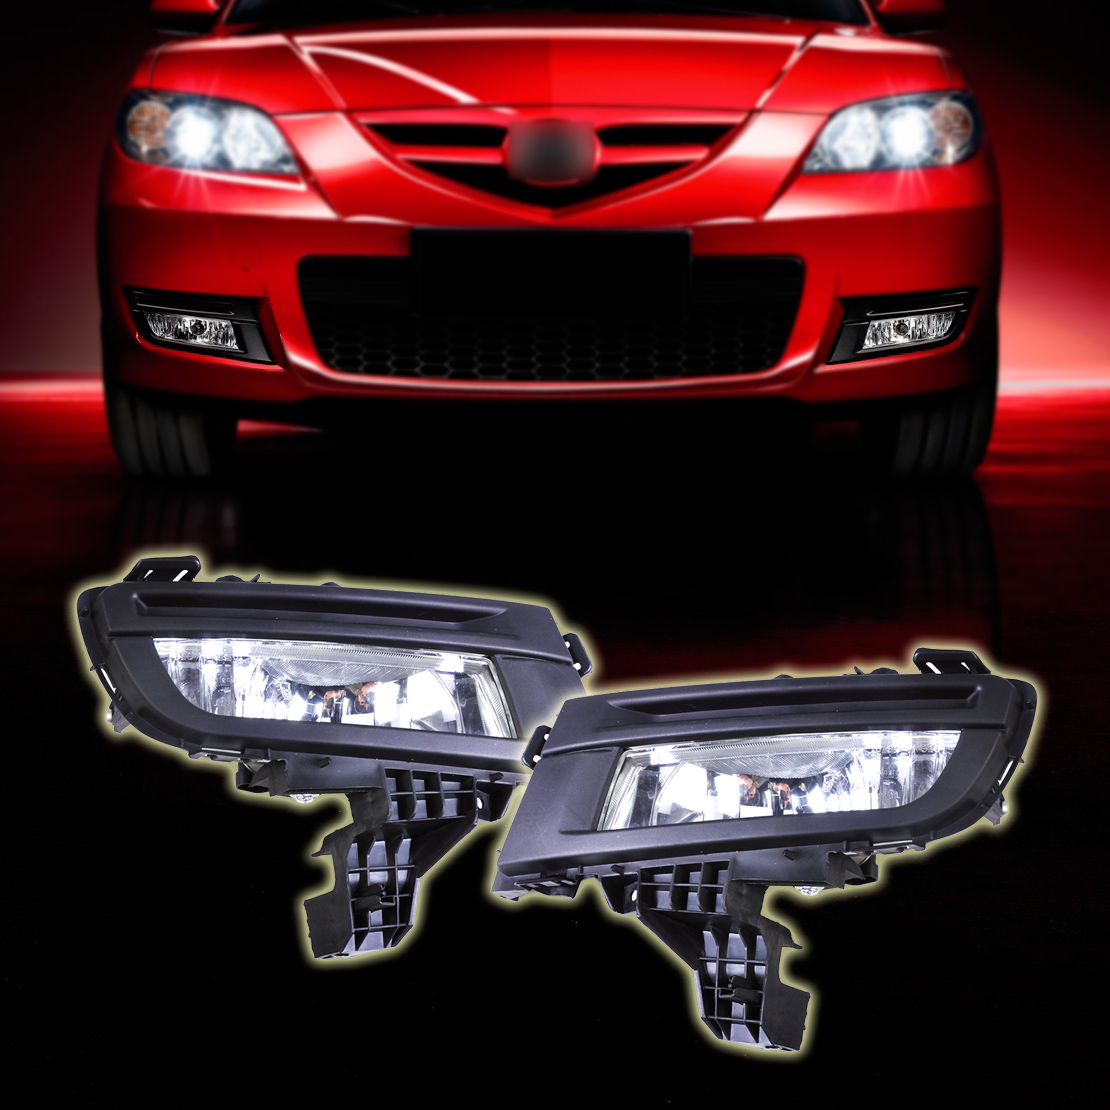 DWCX Pair Front Fog Light Lamp 9006 12V 51W Front Left + Right Side Replacement for Mazda 3 2007 - 2009 without Wiring Harness beler new high quality abs plastic new front left fog light lamp 9006 12v 51w replacement ma2592113 for mazda 3 2007 2008 2009